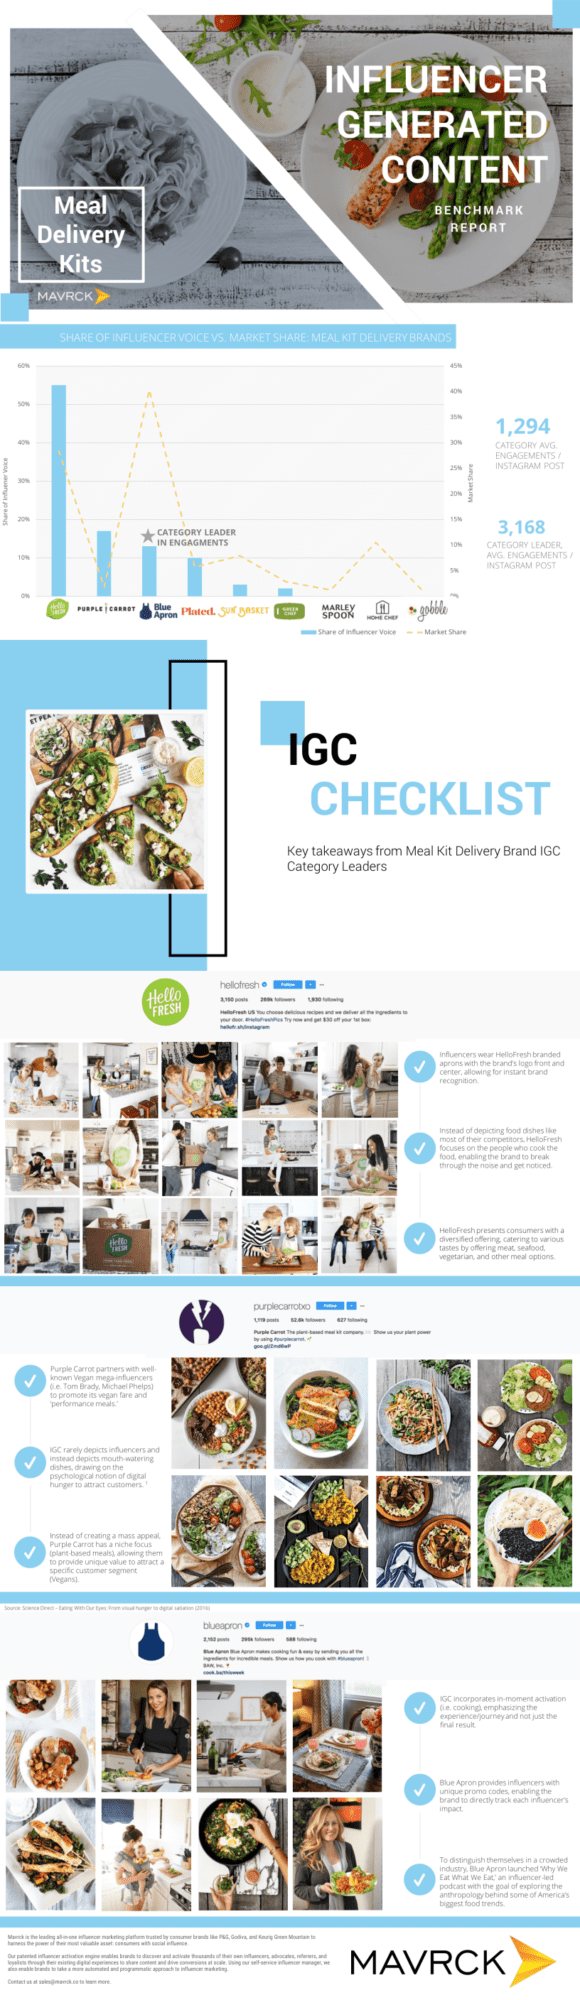 Meal-Kit-Delivery-Services-IGC-Mavrck_2018